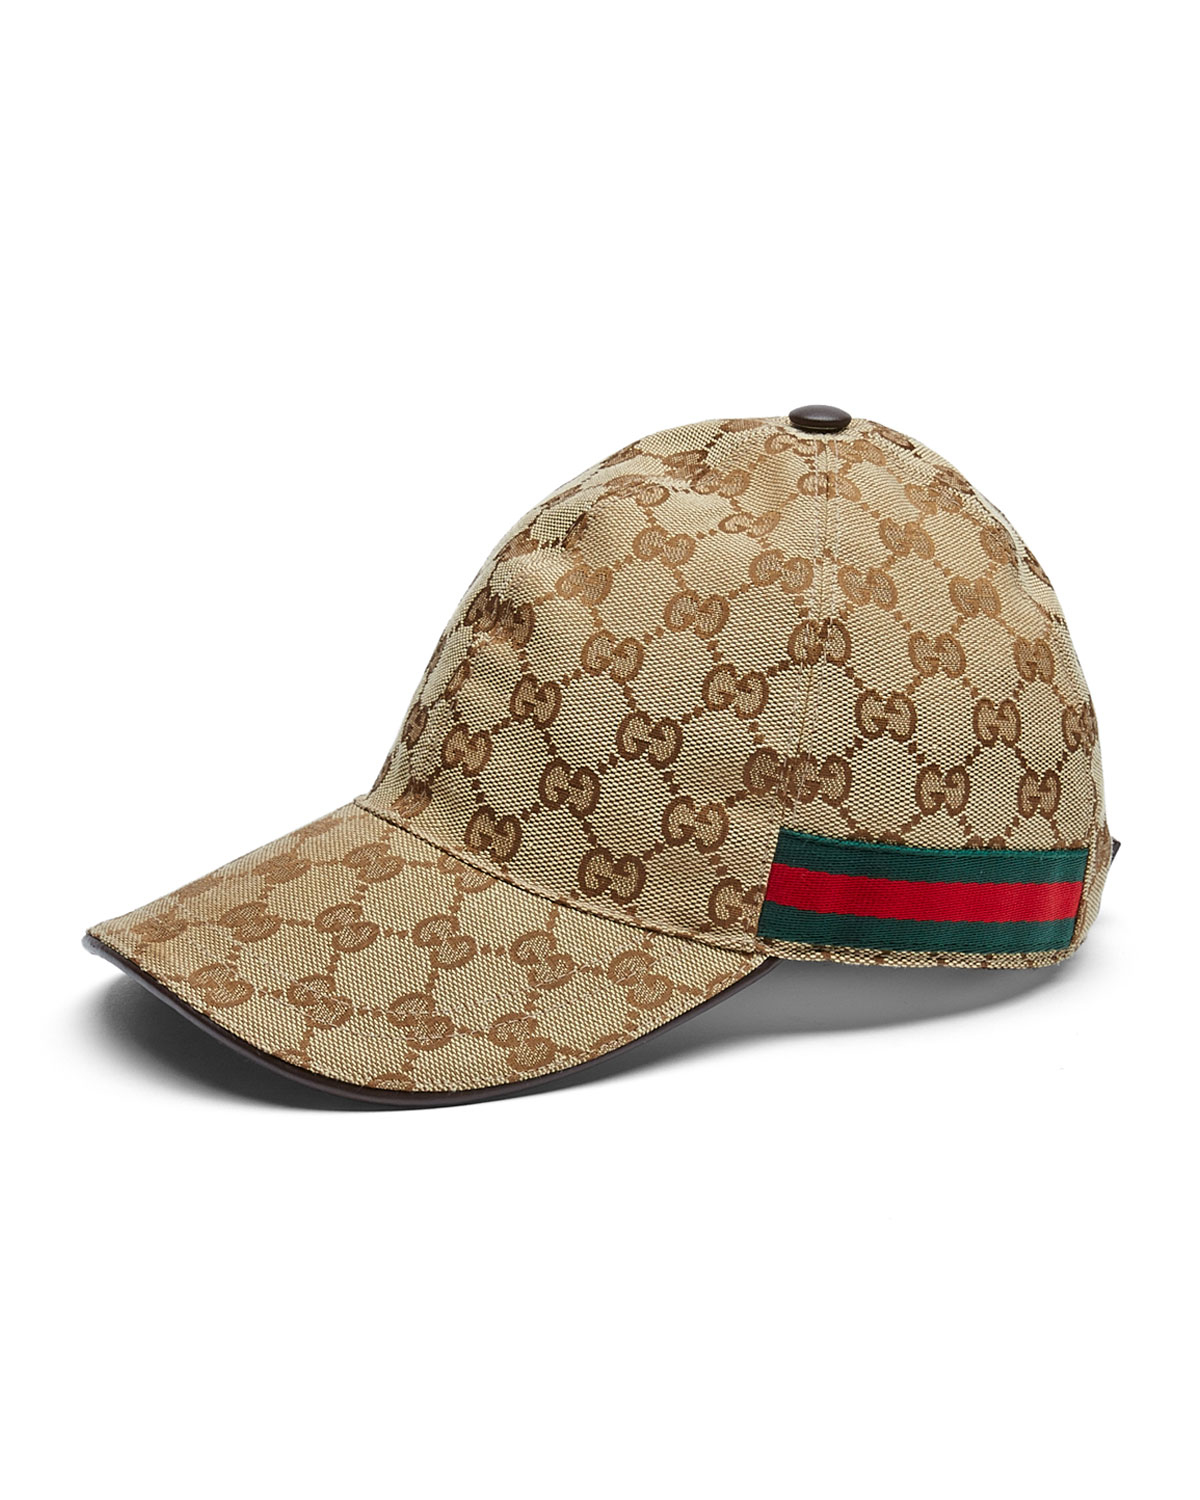 7e5e4d0dfb2 Lyst gucci canvas baseball hat in brown for men jpg 1200x1500 Gucci hats  for men